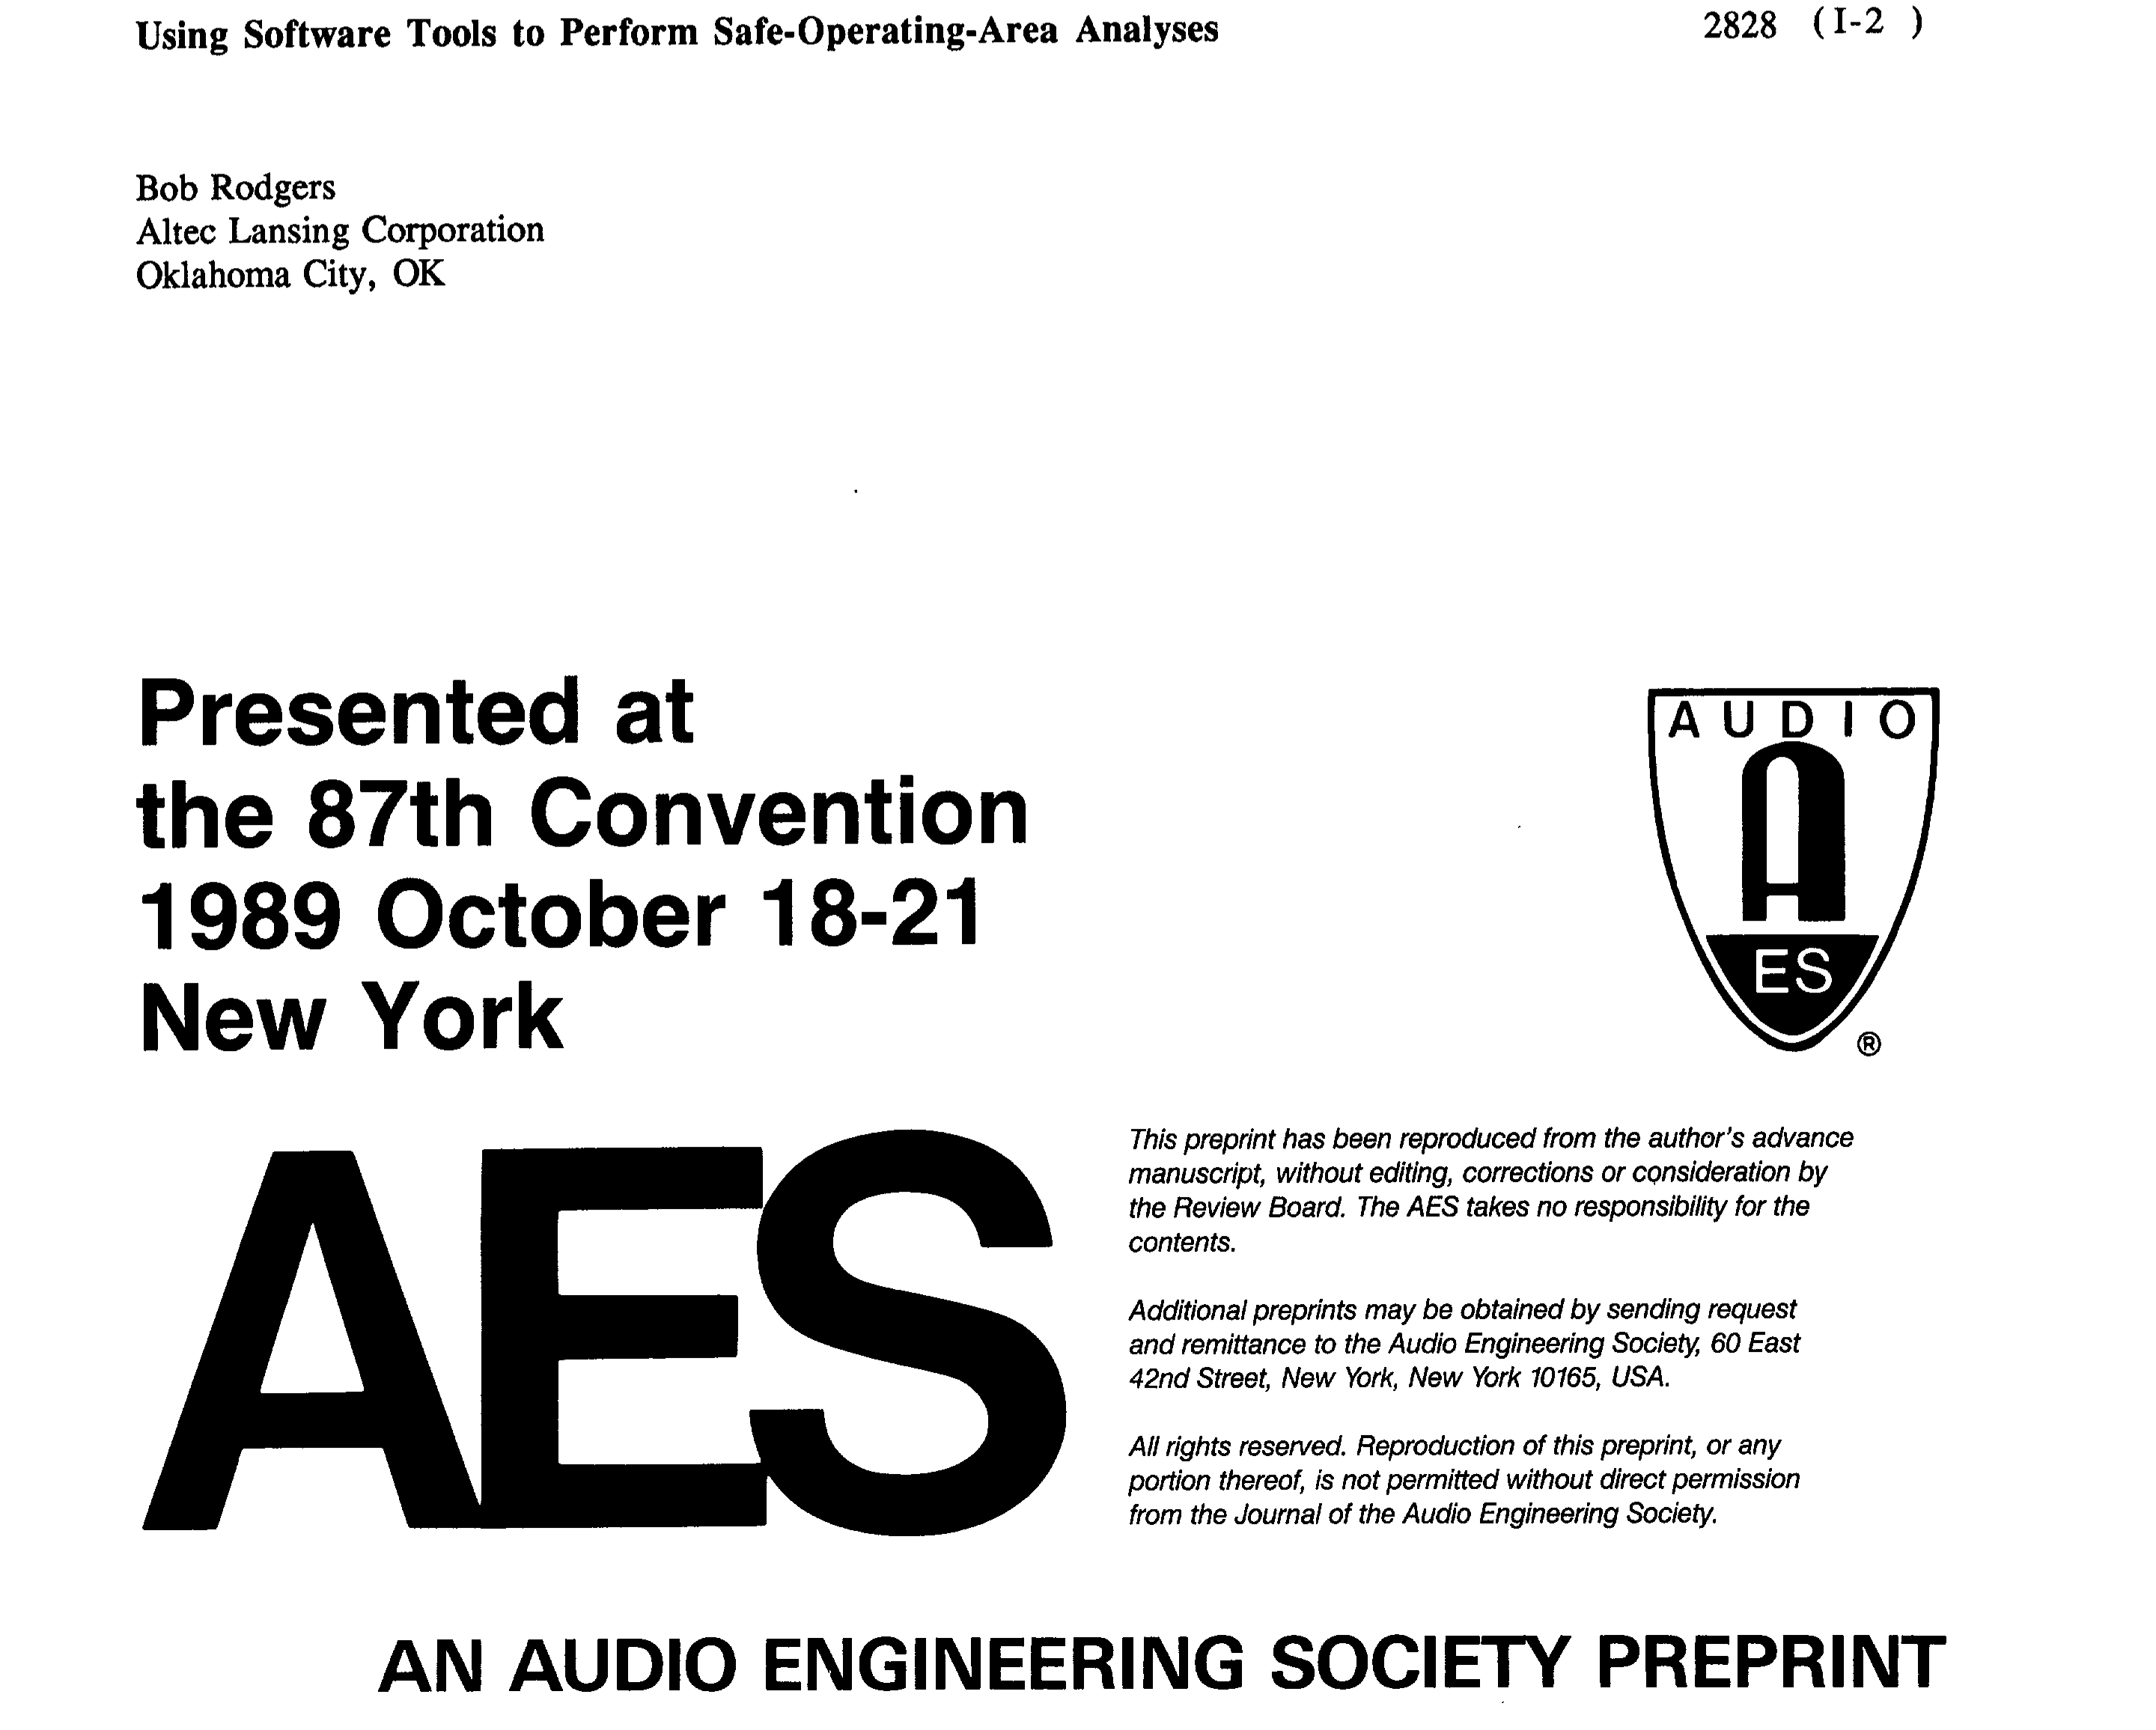 AES E-Library » Using Software Tools to Perform Safe-Operating-Area